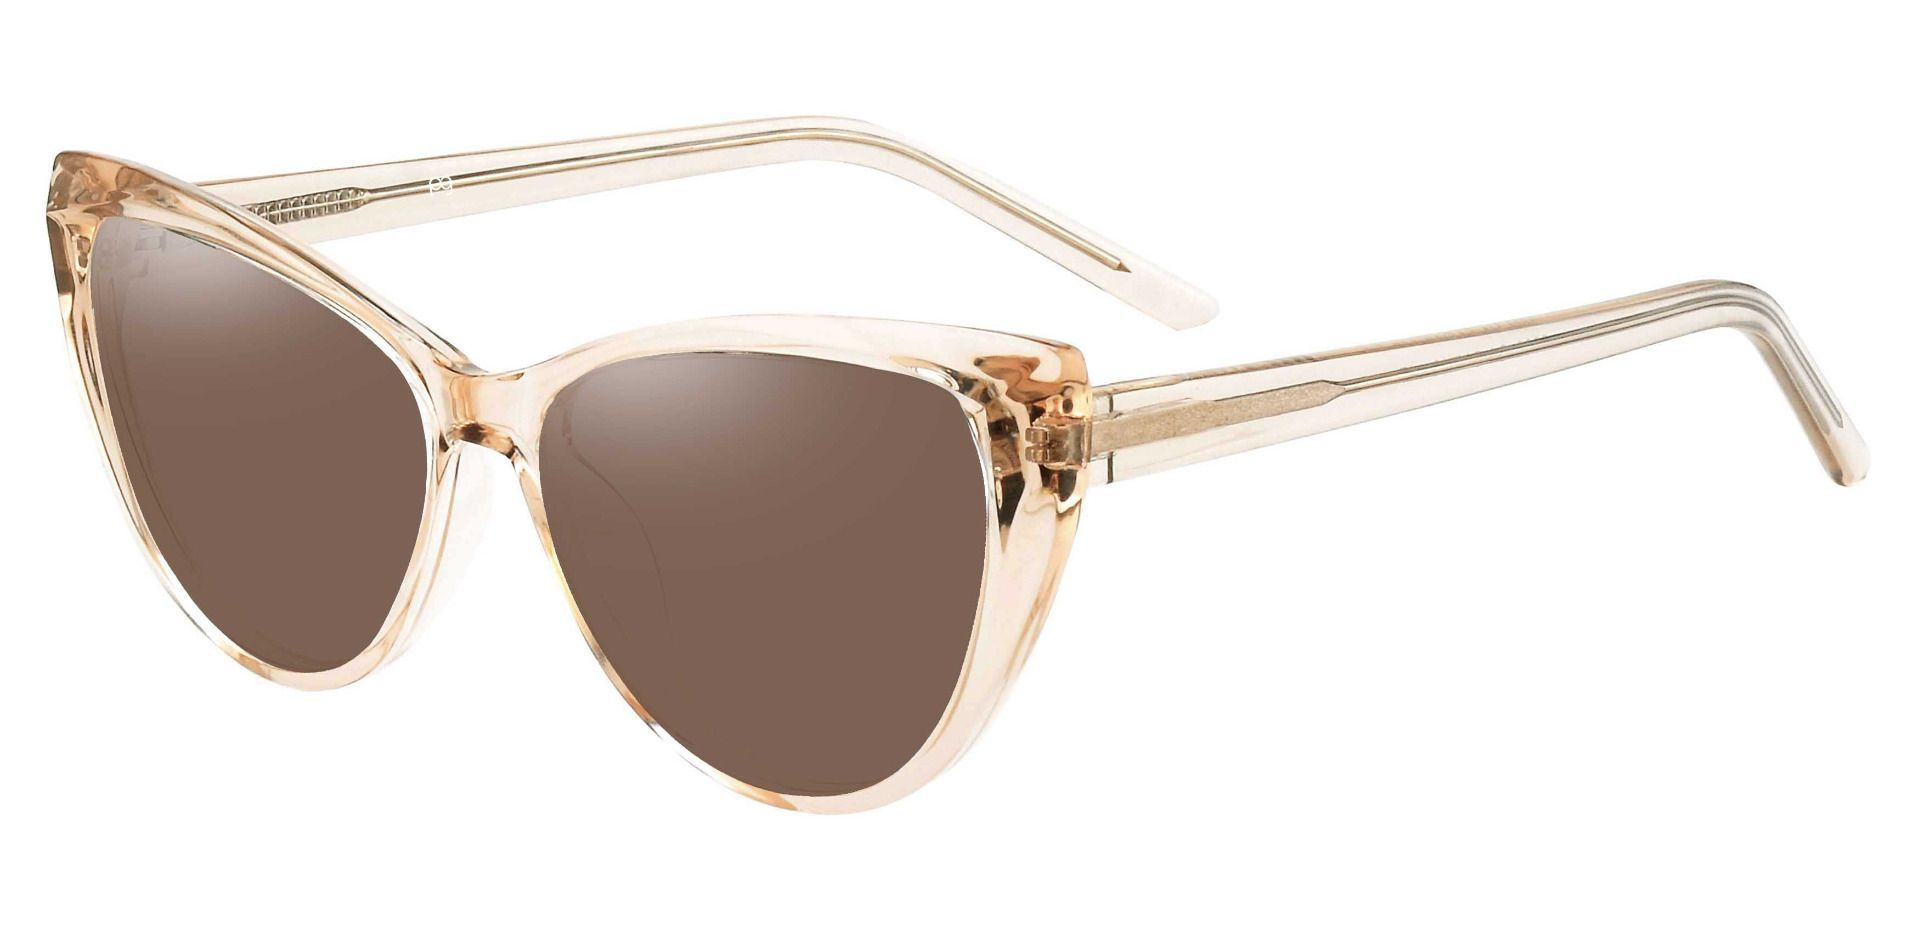 Ireland Cat Eye Non-Rx Sunglasses - Brown Frame With Brown Lenses